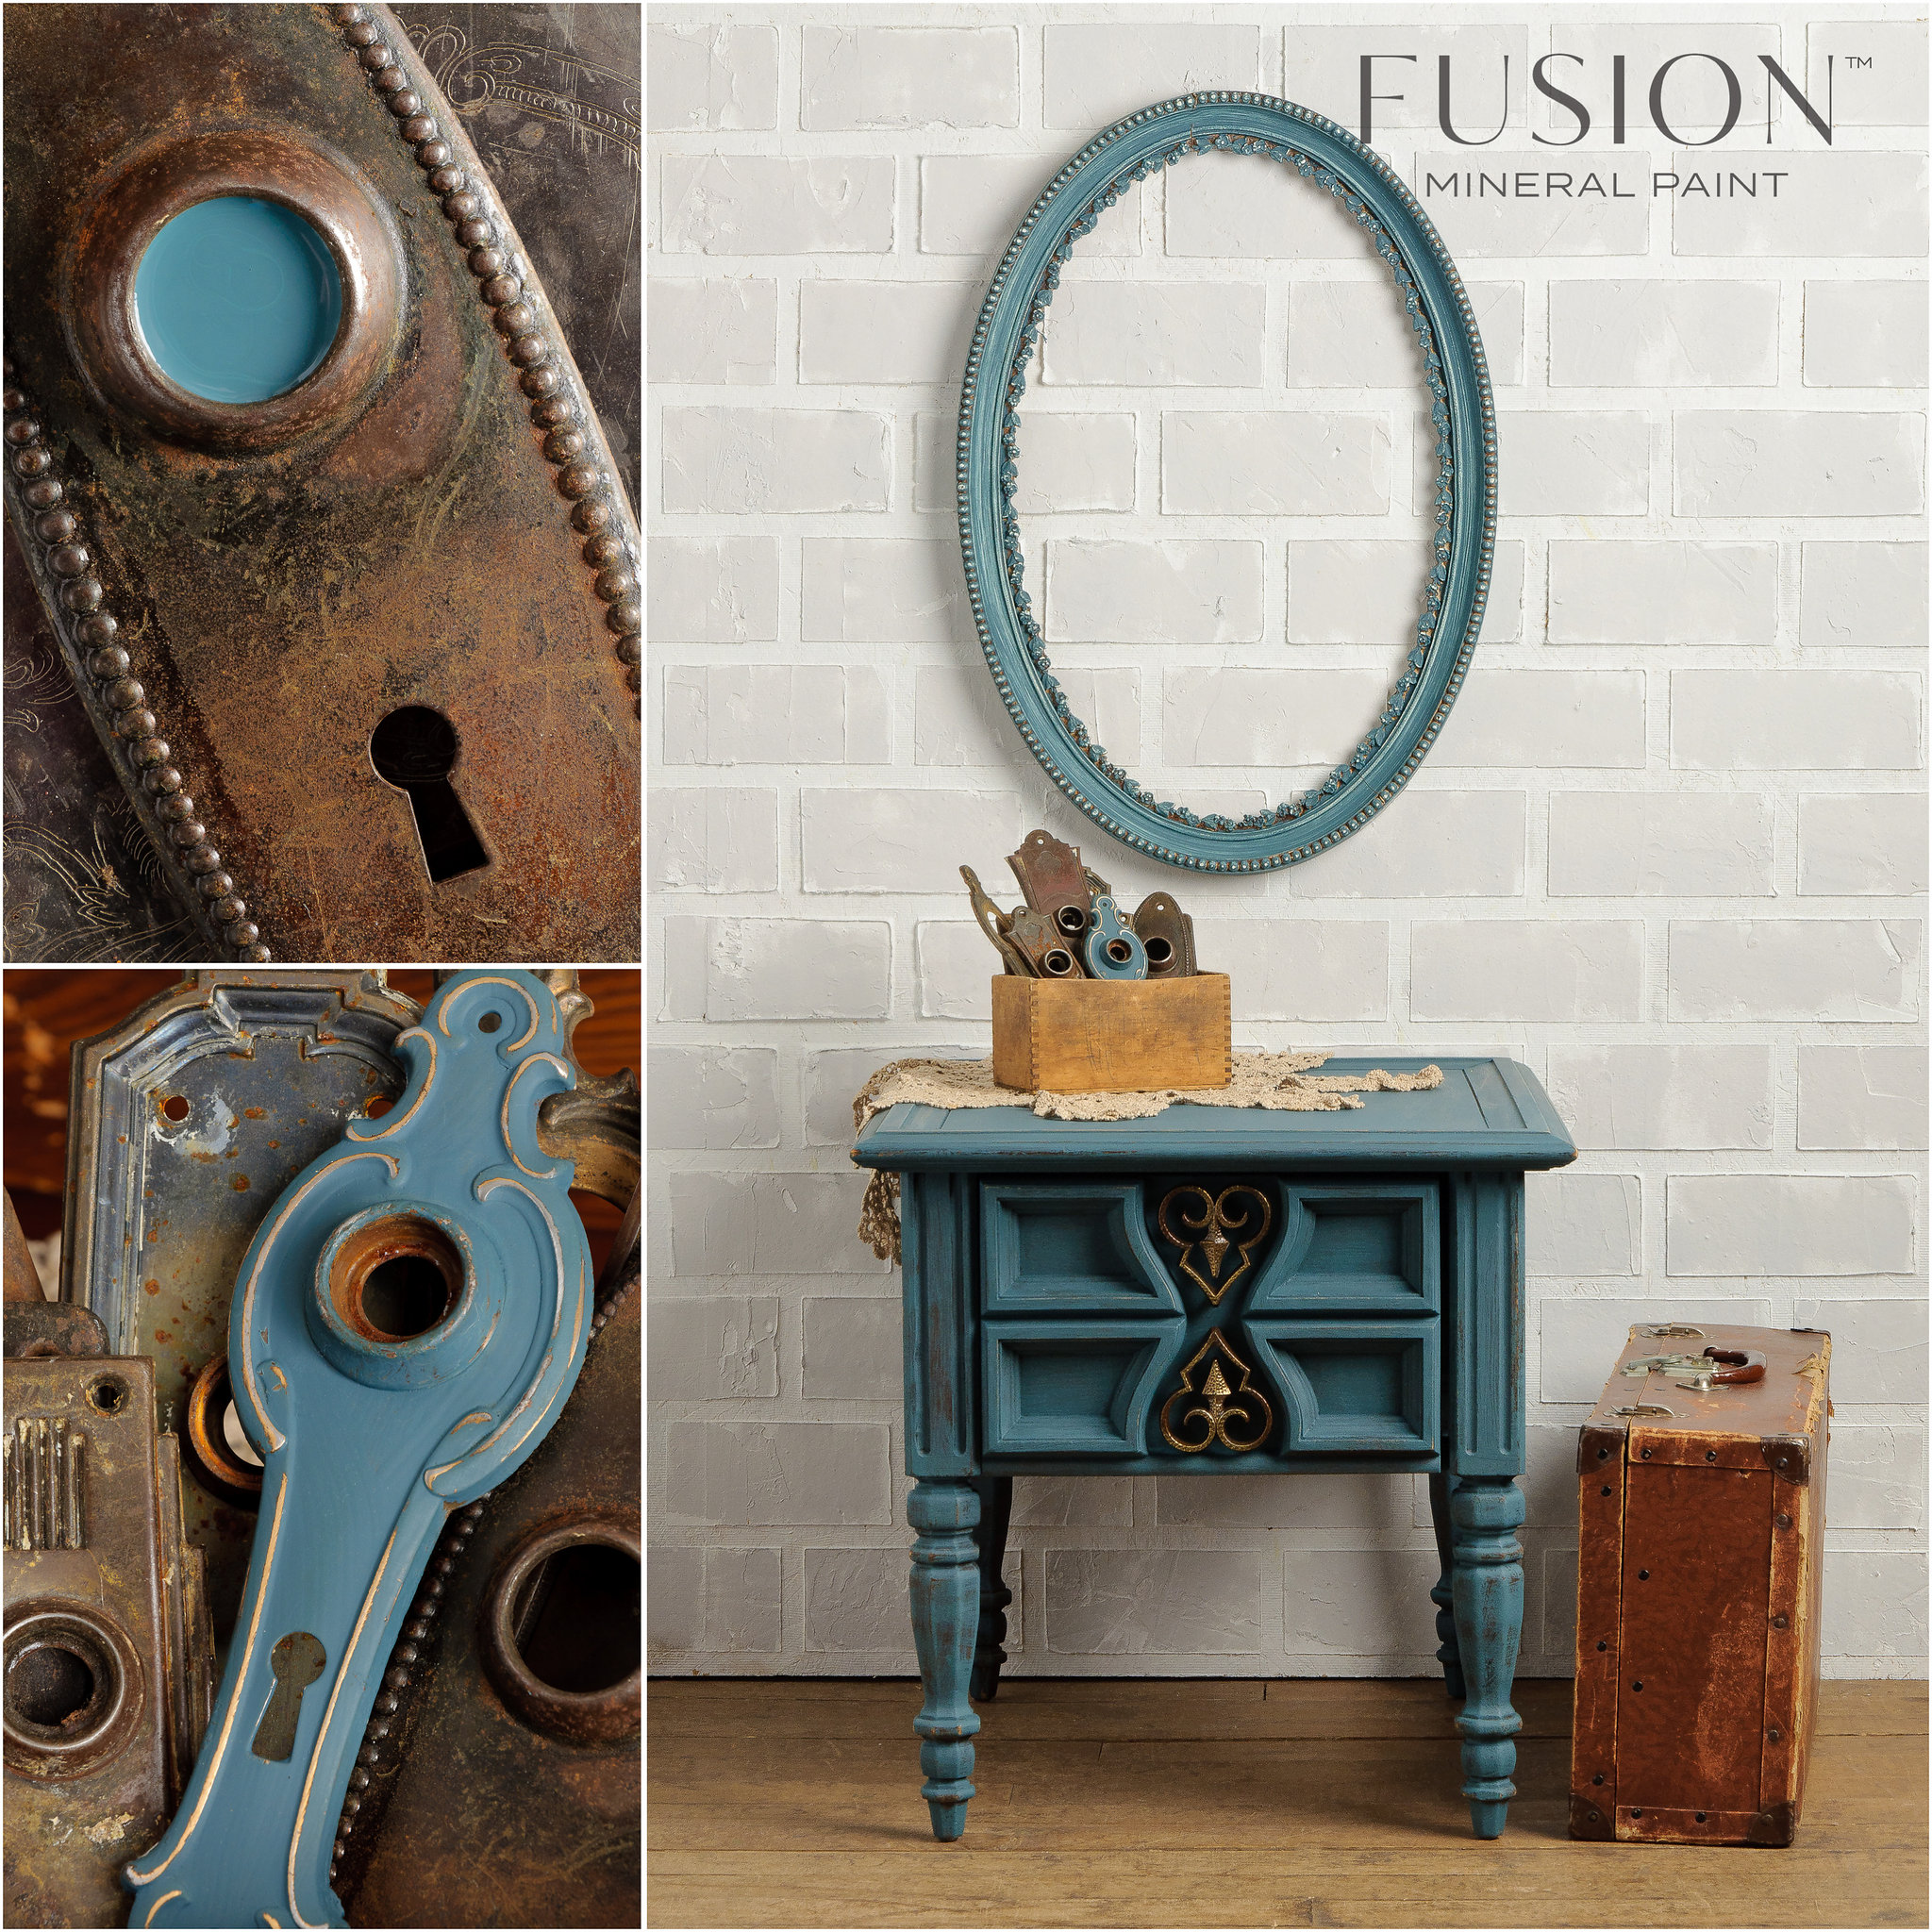 End table and Frame Painted in Homestead Blue Fusion Mineral Paint